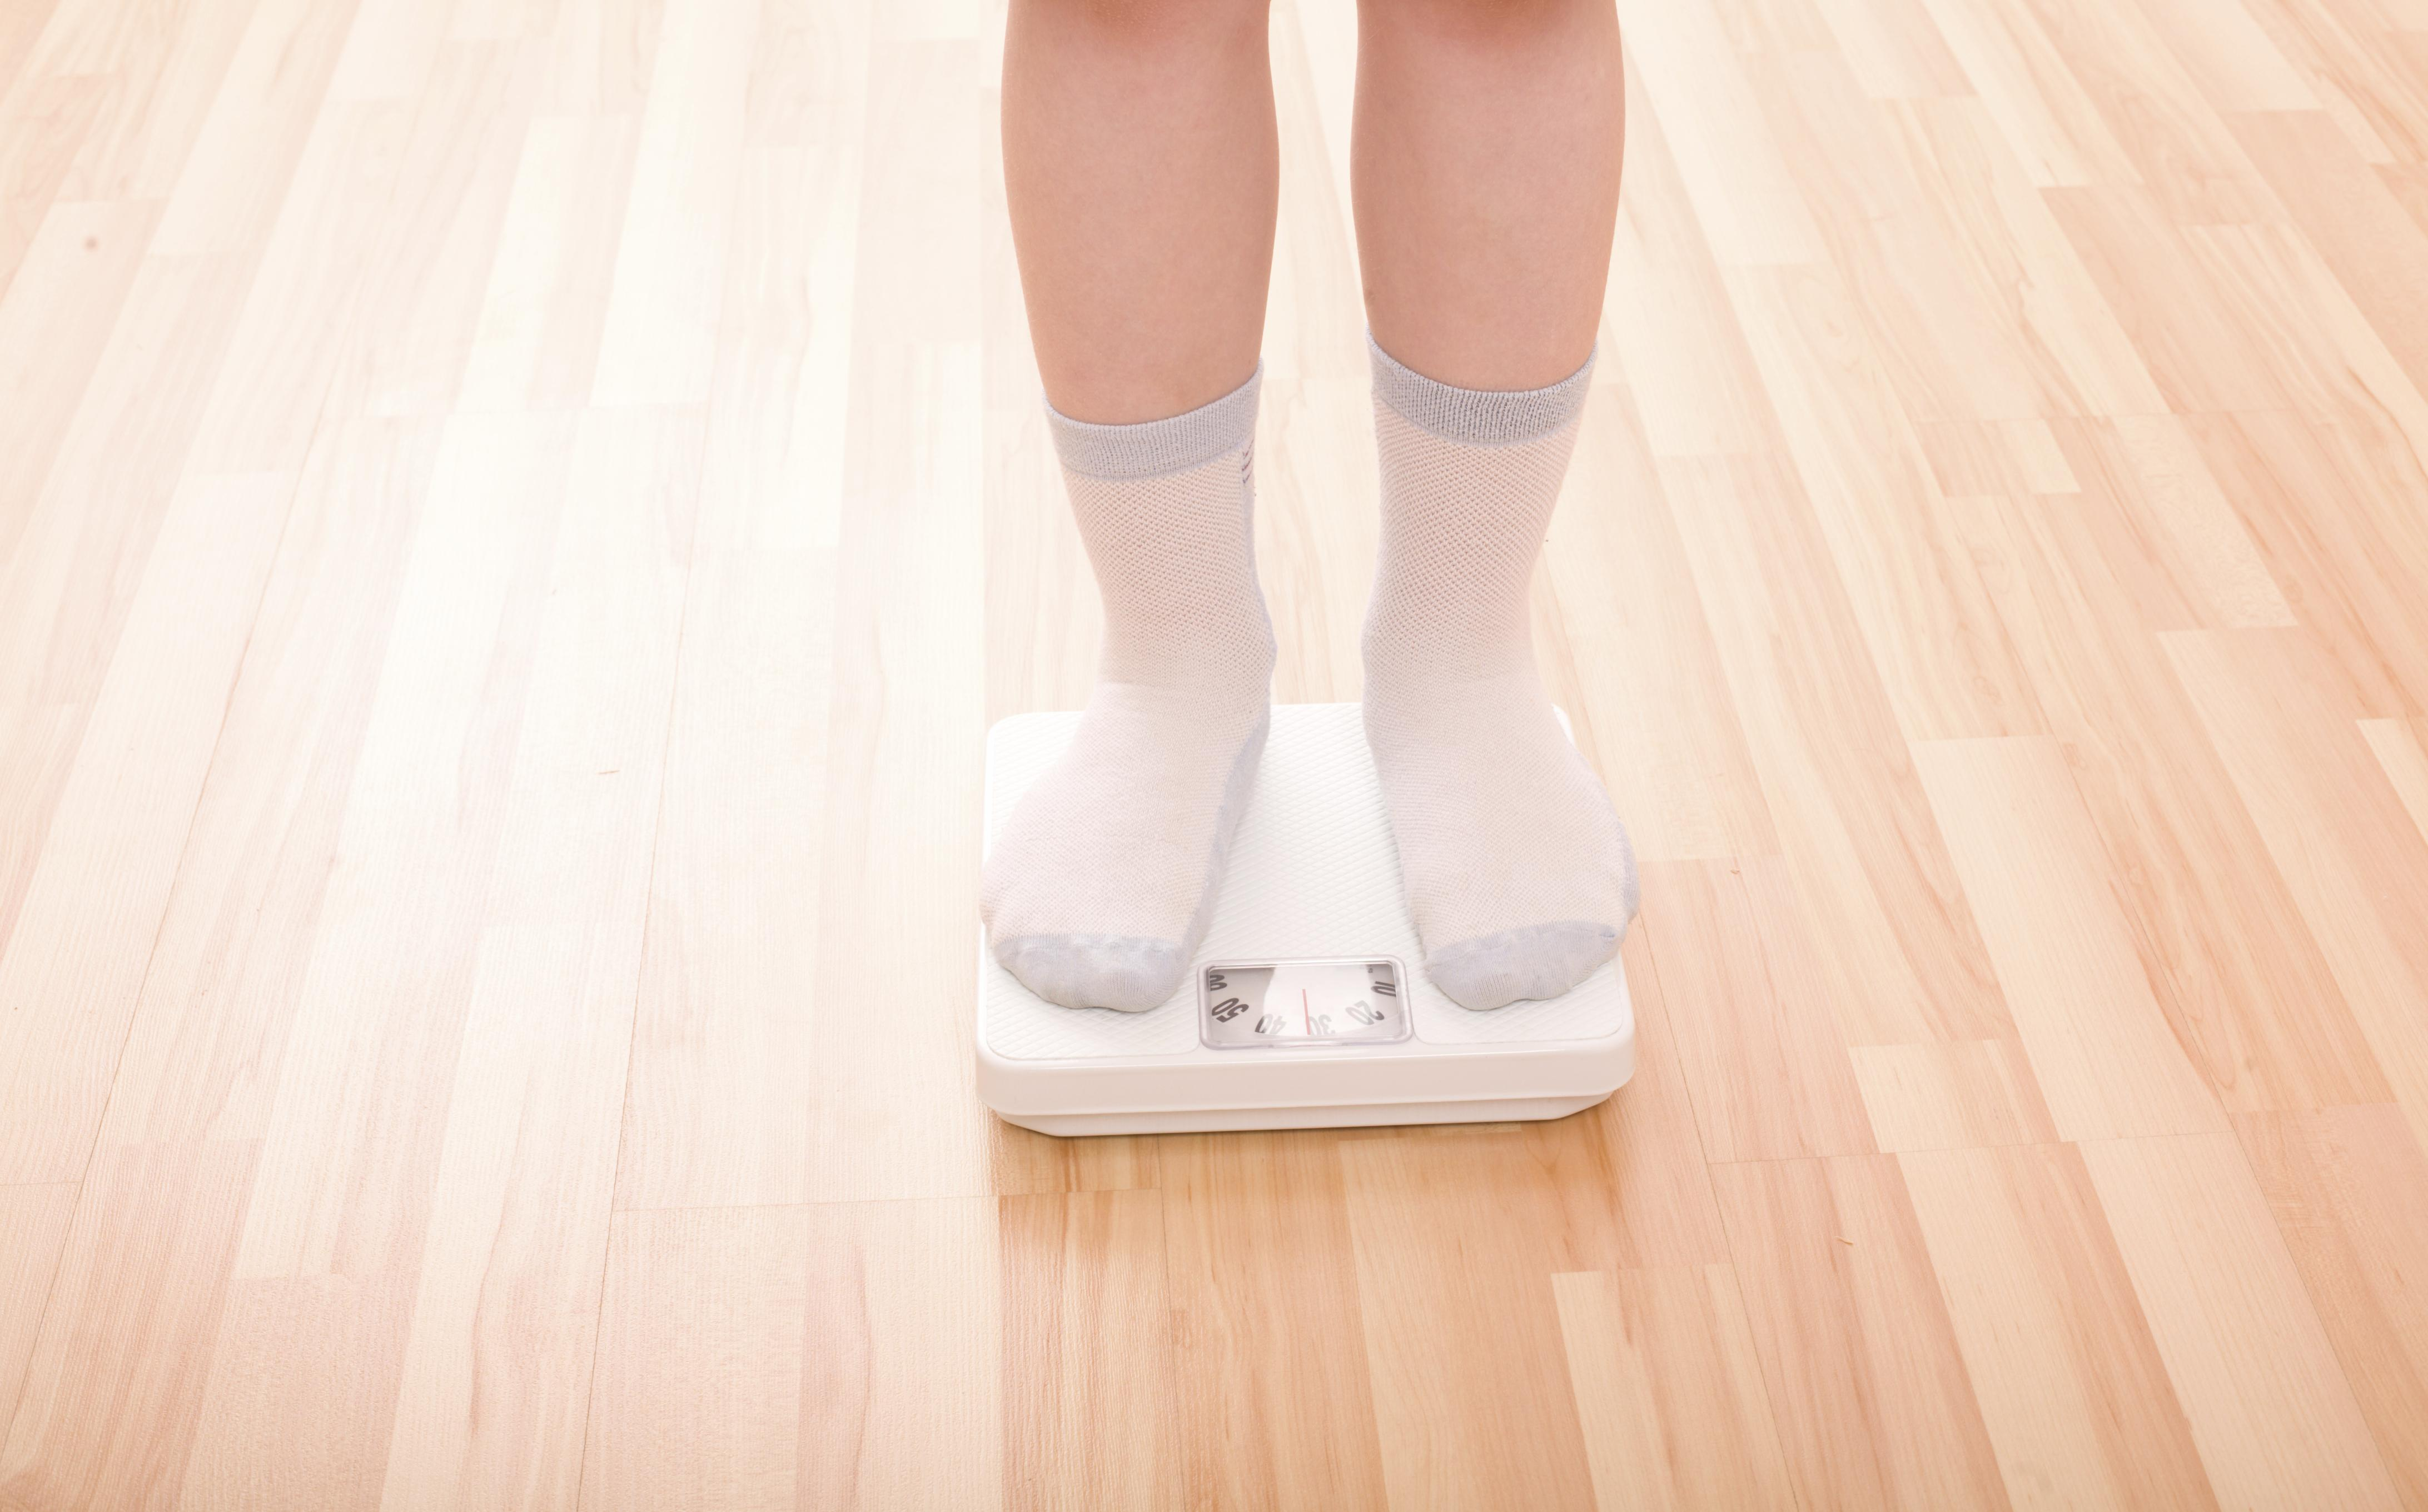 Child with feet on weight scale